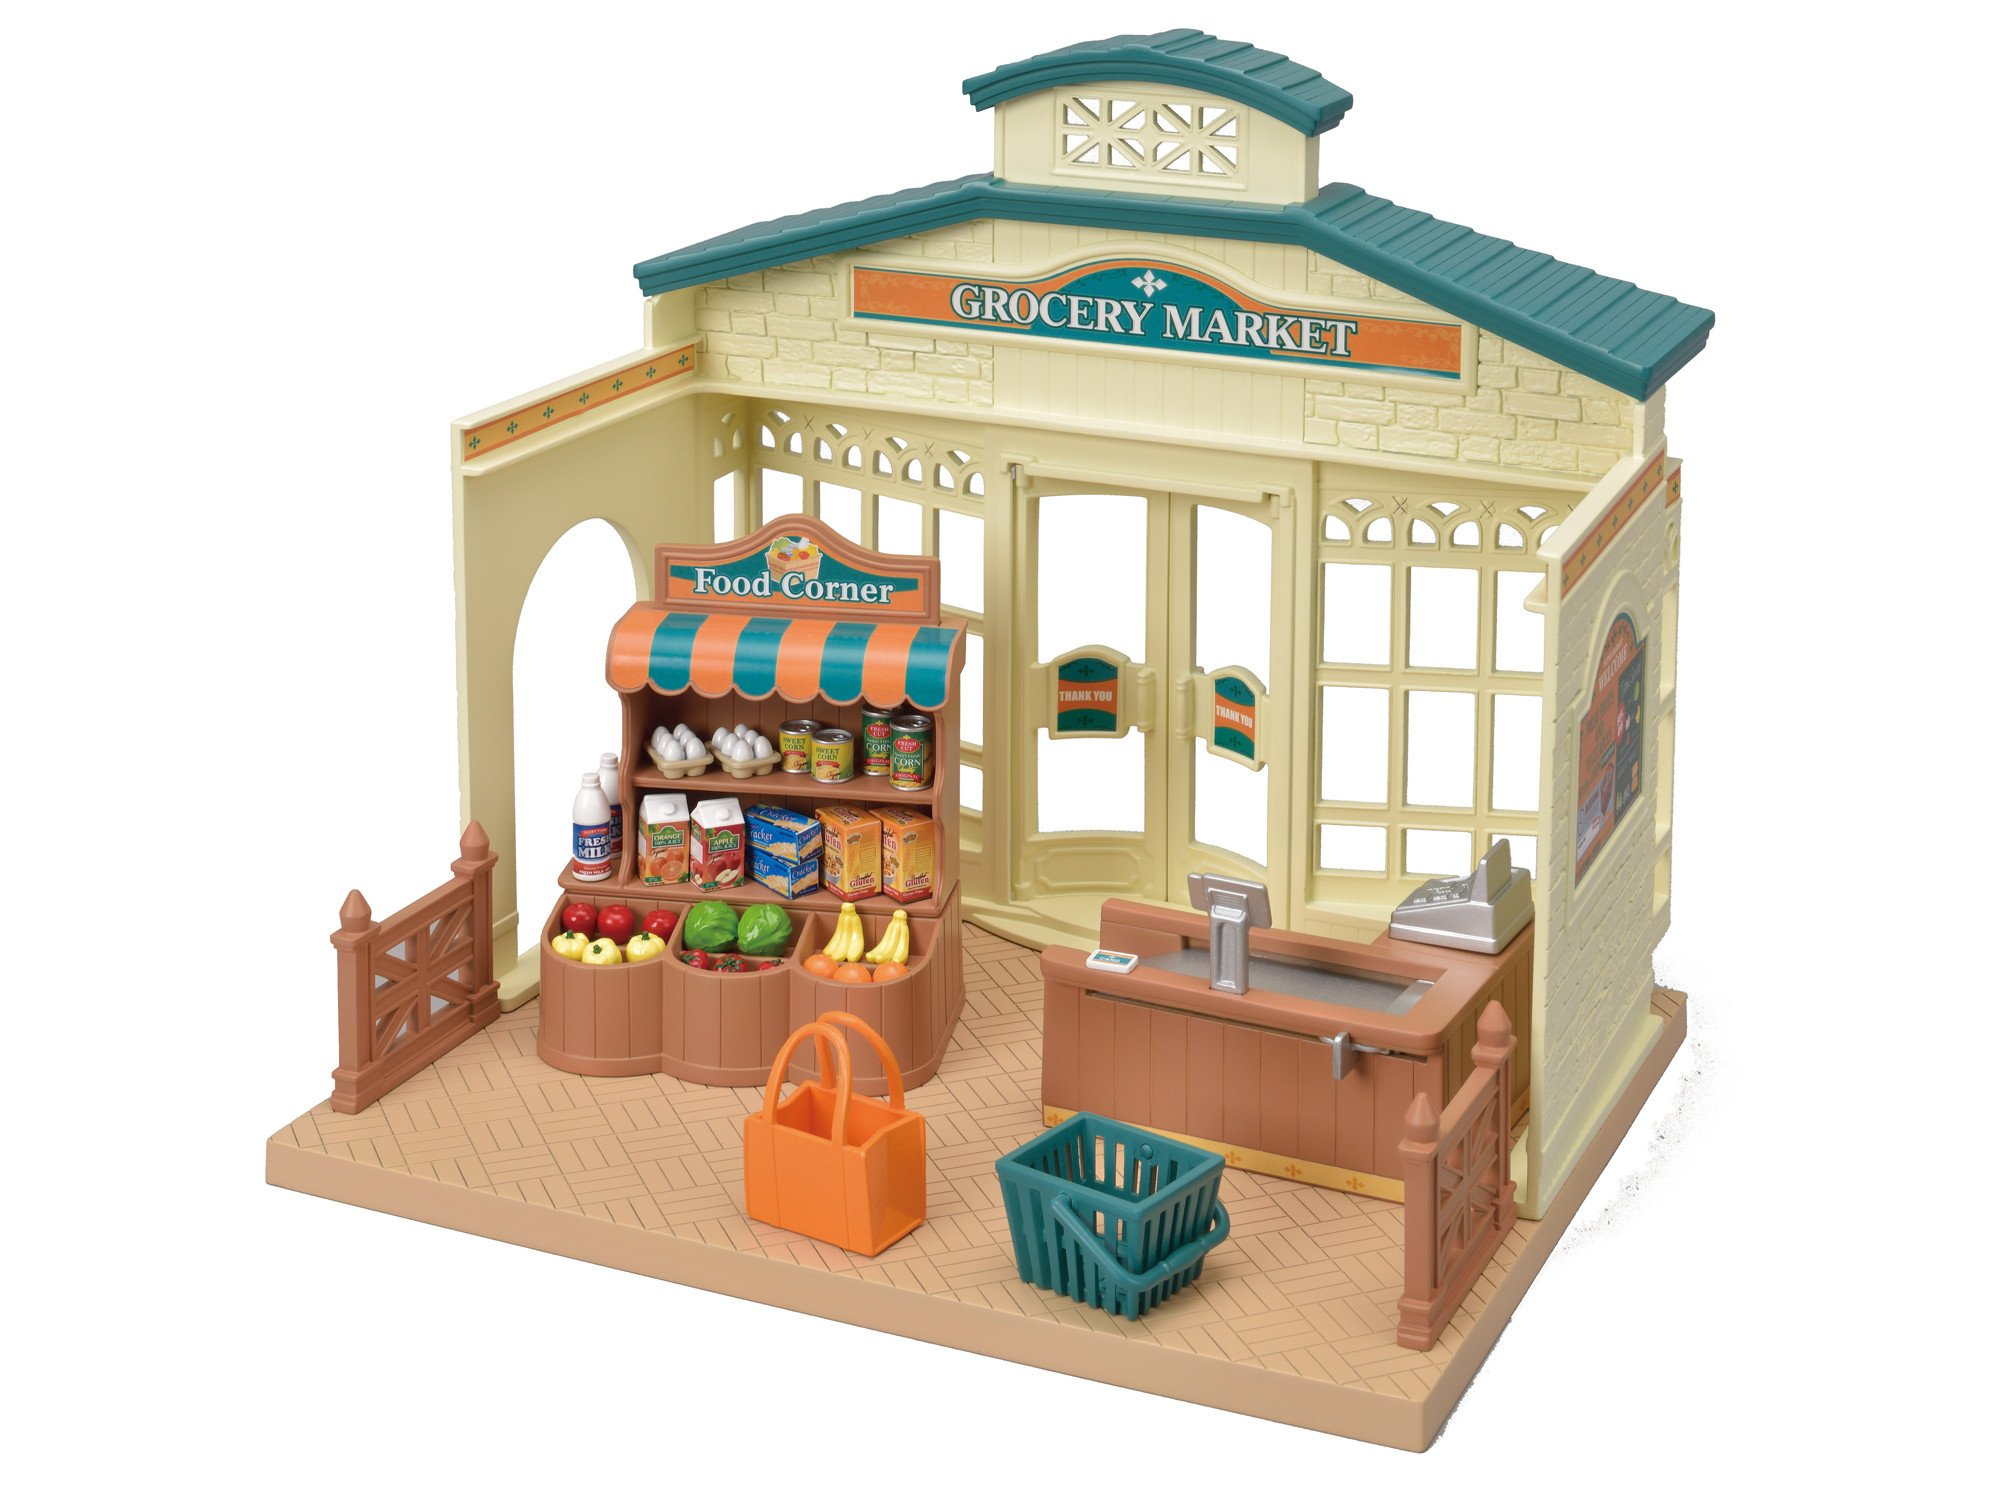 Calico Critters Grocery Market by Calico Critters